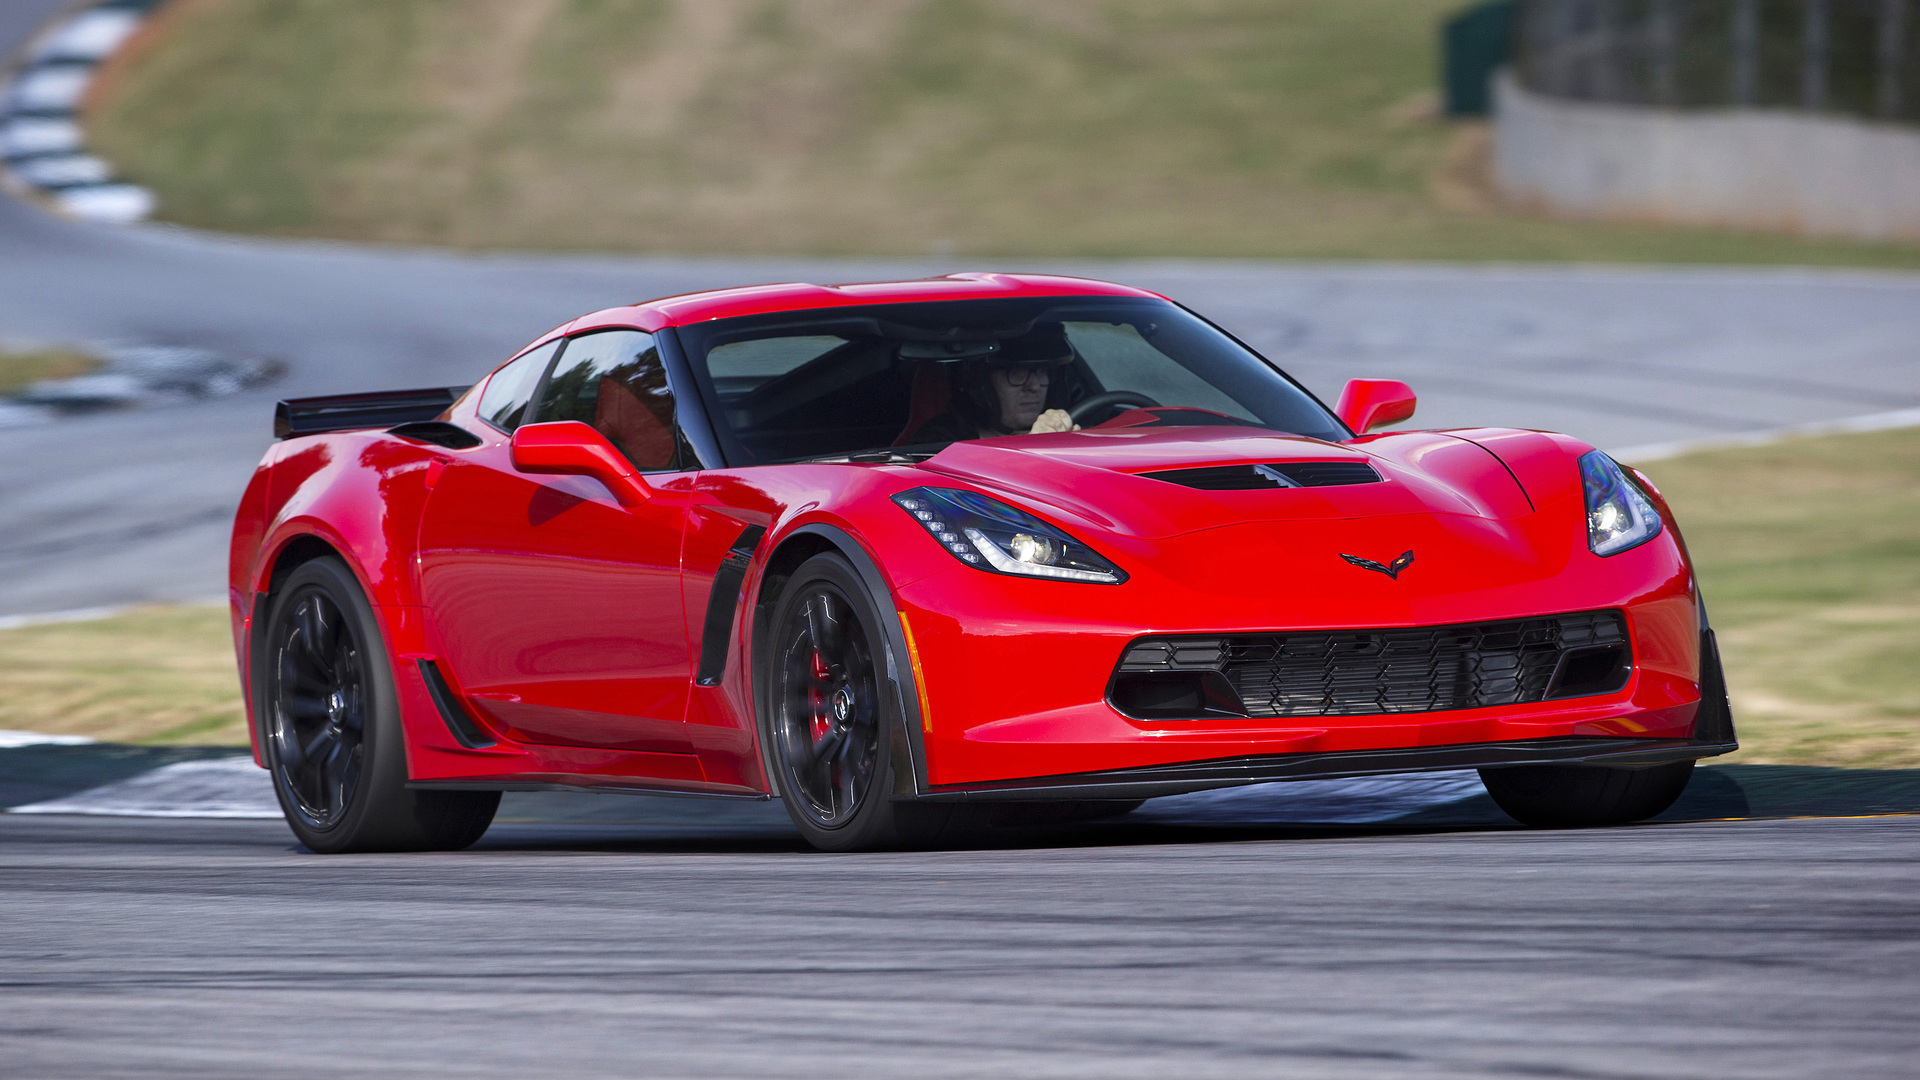 2017 chevrolet corvette z06 to get cooling improvements. Black Bedroom Furniture Sets. Home Design Ideas